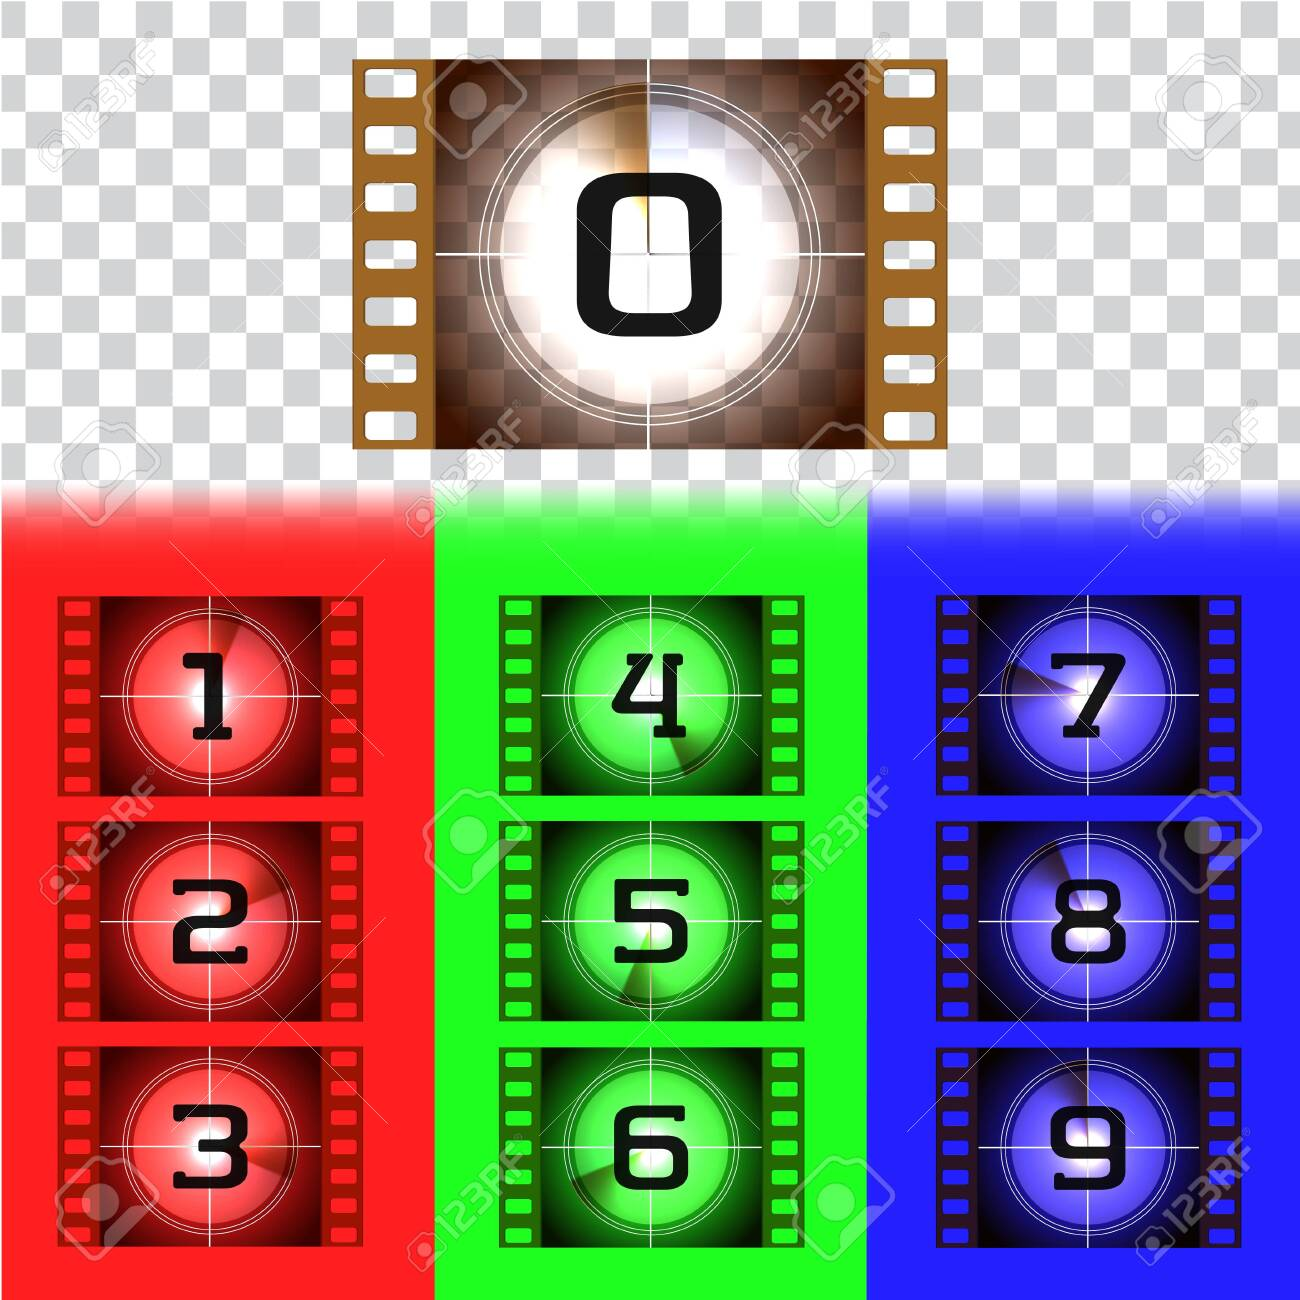 Creative frames countdown to the start numbers. Old film movie timer count. Retro cinema filmstrip count down slides with circle sections timer isolated on grunge background. Colorful vector set. - 124074745